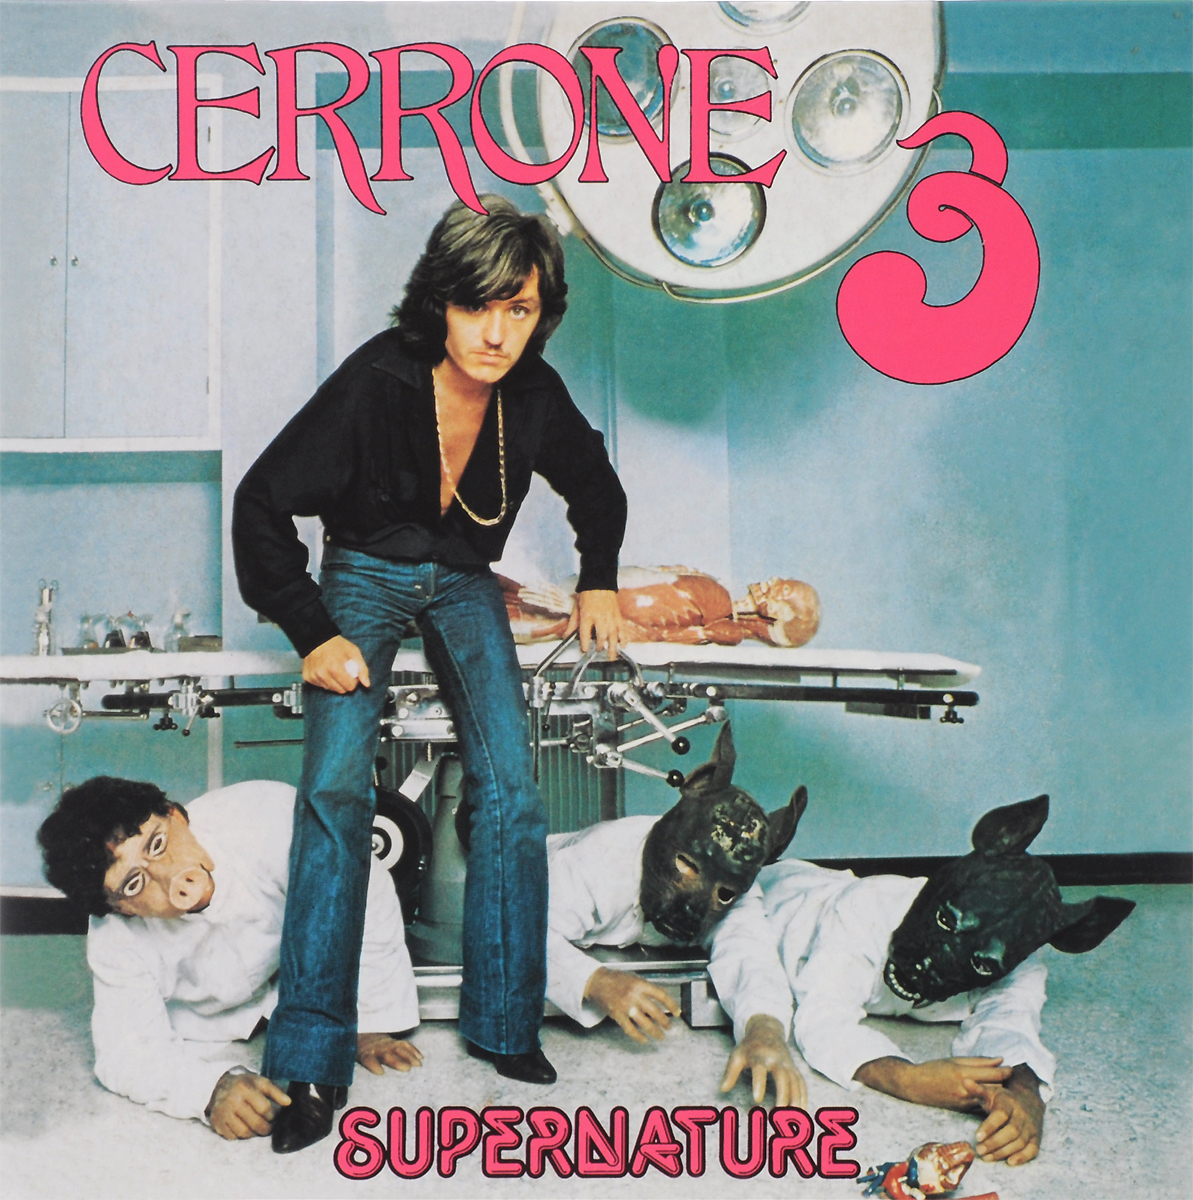 Cerrone Cerrone. 3. Supernature (LP + CD) vildhjarta vildhjarta masstaden lp cd